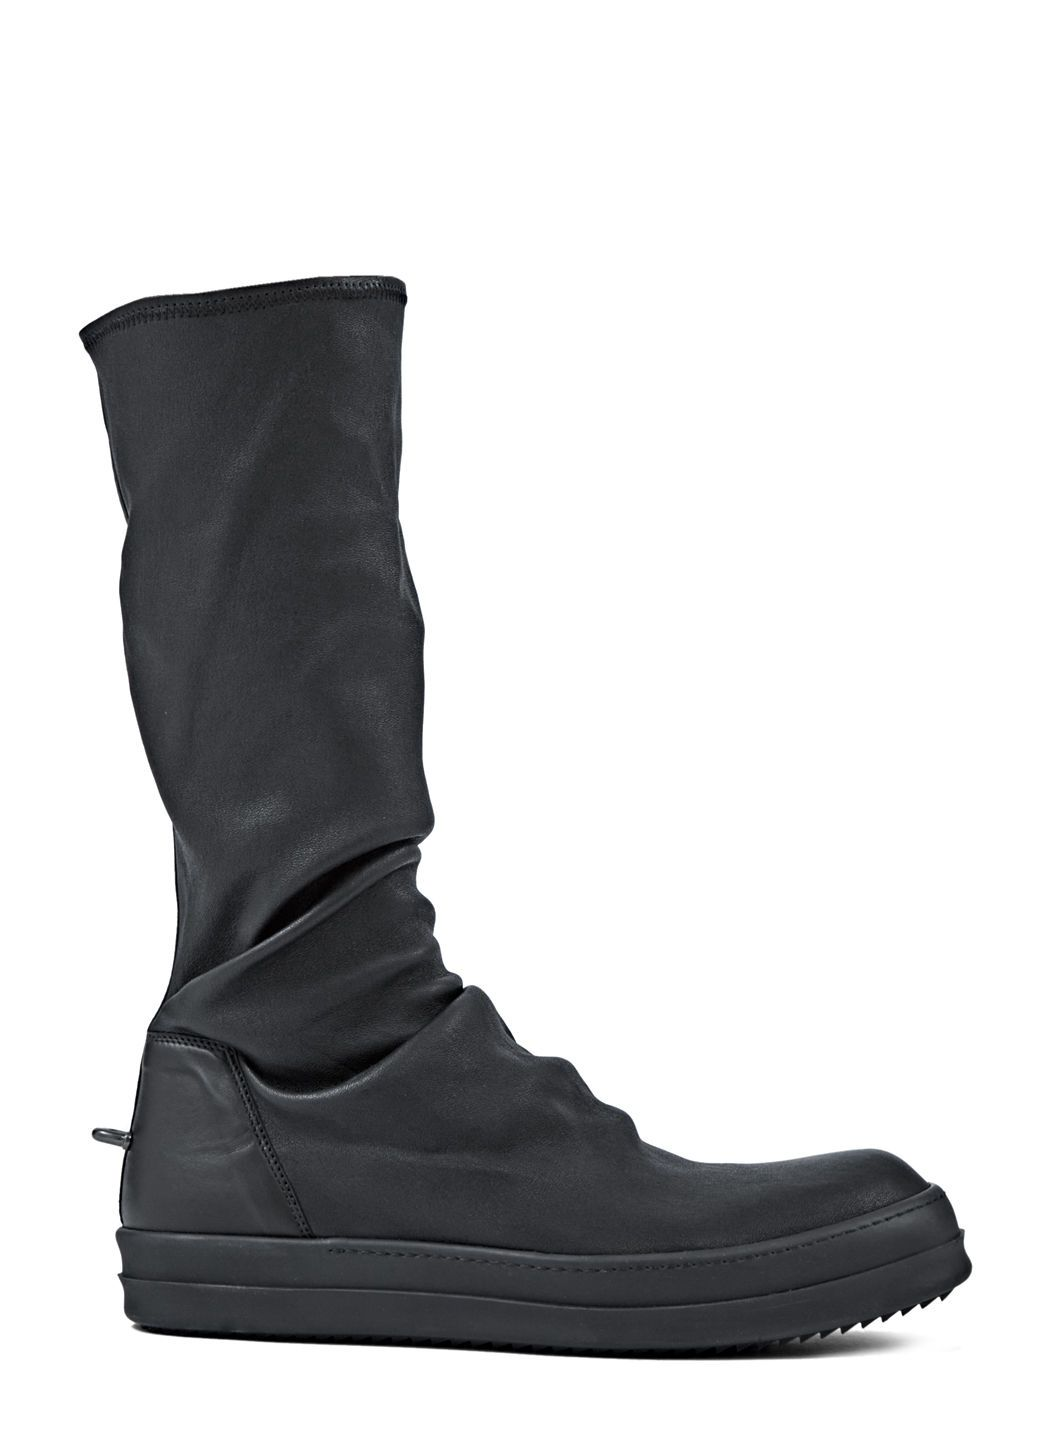 Leather STRETCH BOOT Fall/winterRick Owens ZlTZ9